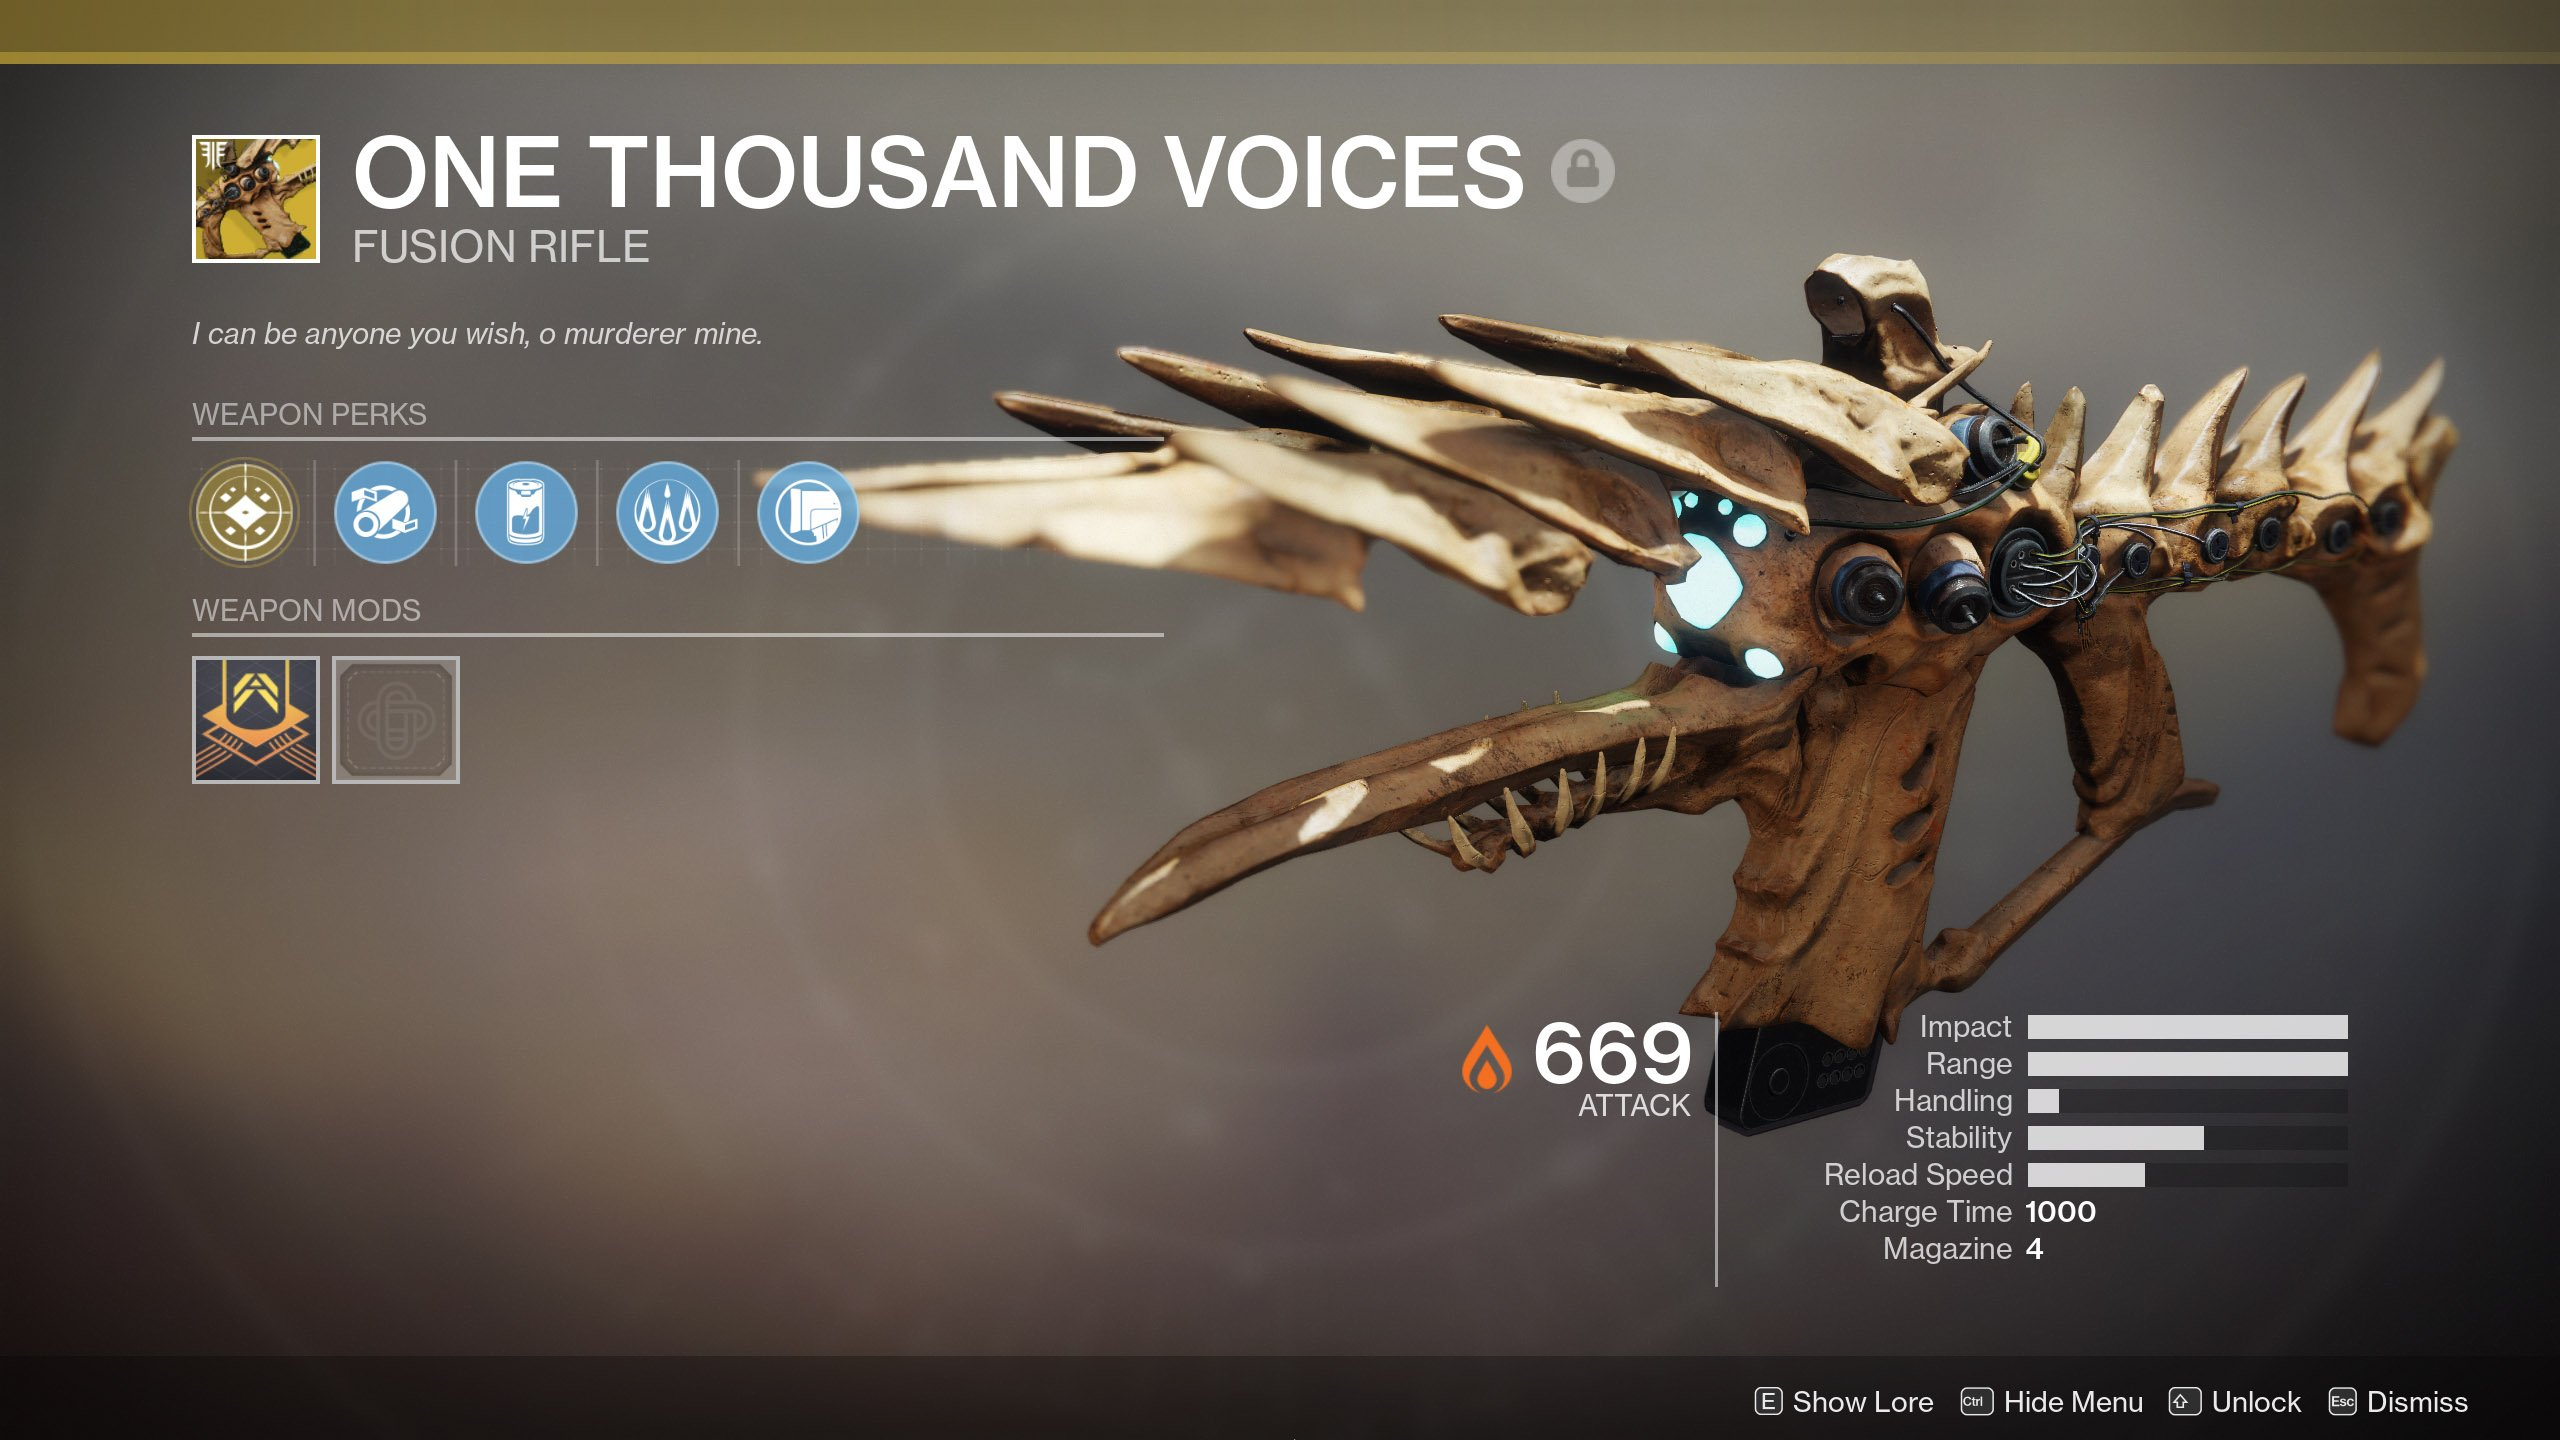 Destiny 2 Update 2.2.1 One Thousand Voices